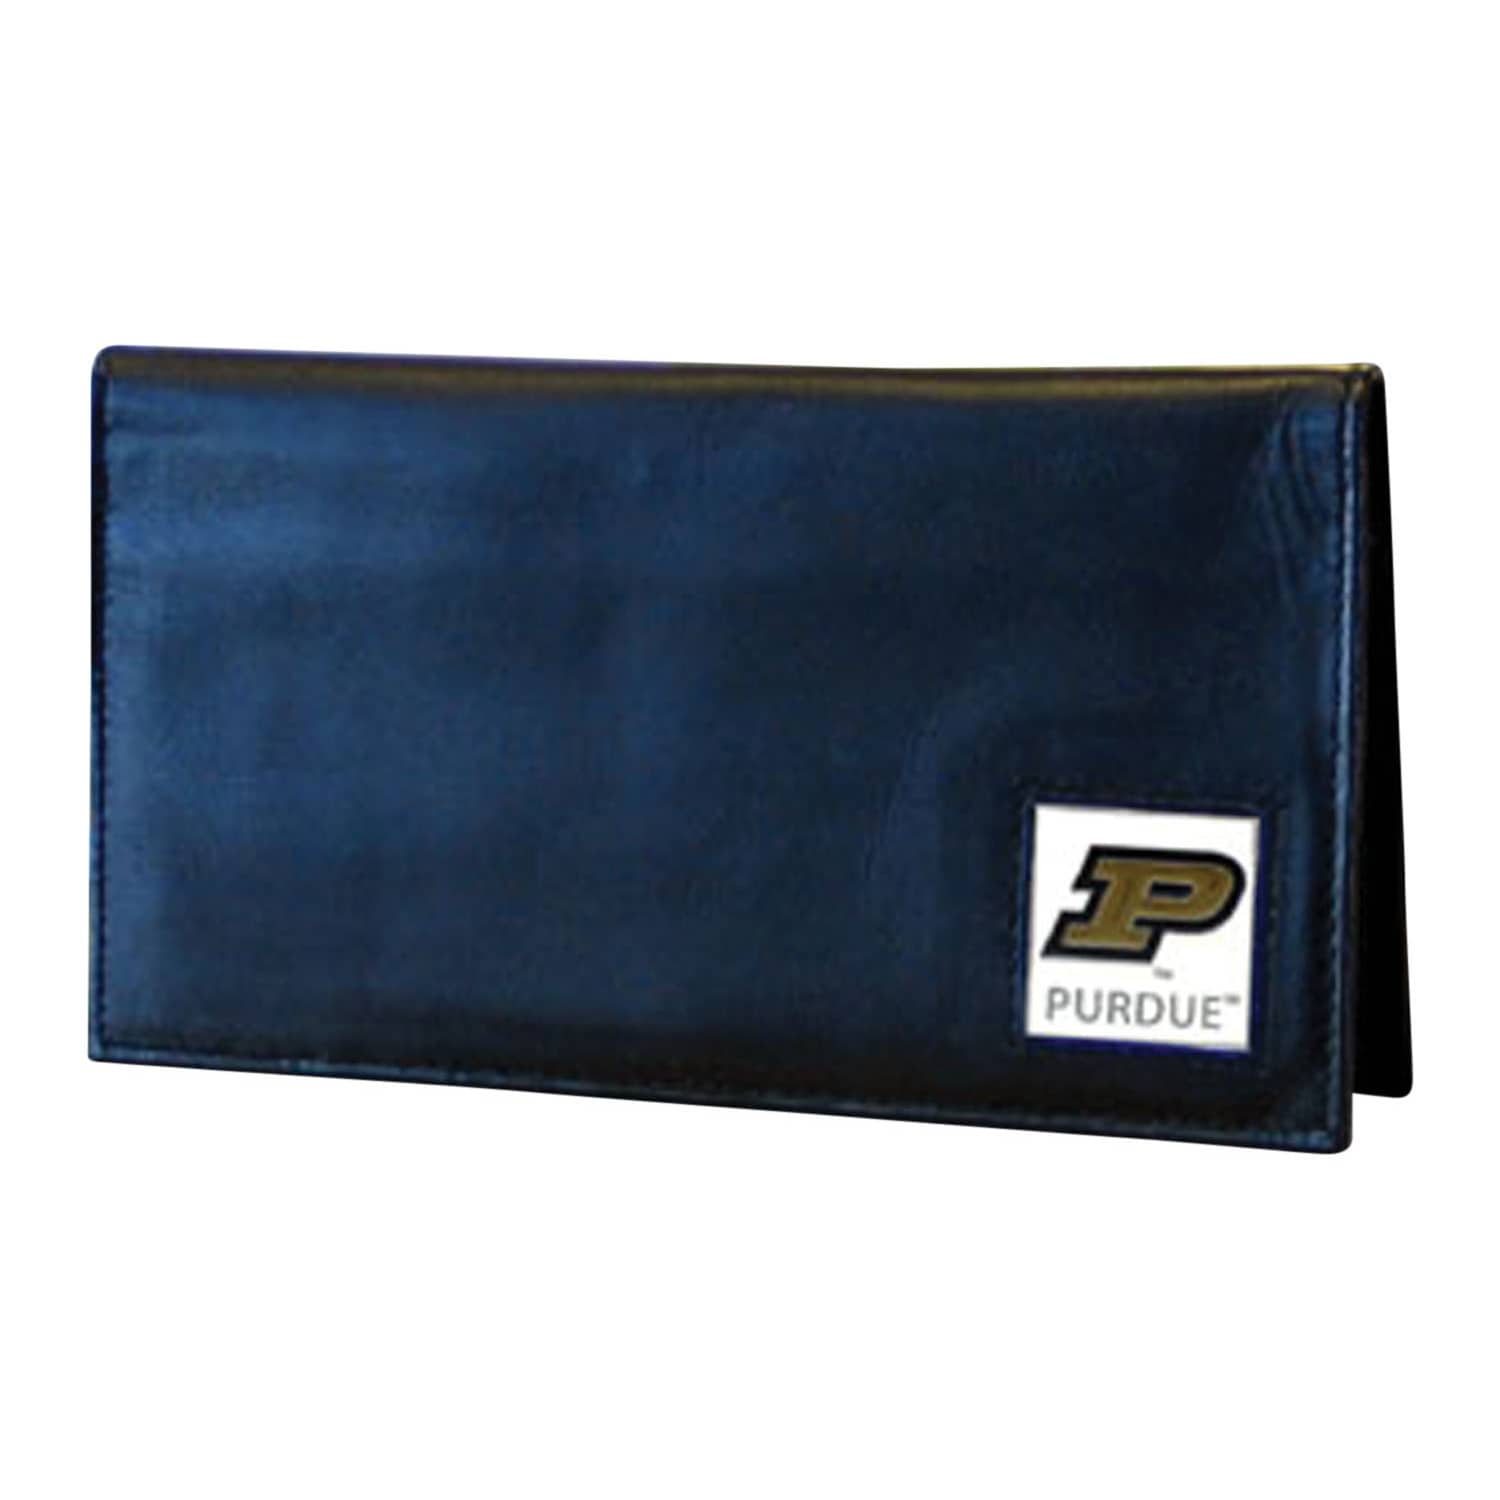 Siskiyou NCAA Deluxe Leather Checkbook Cover